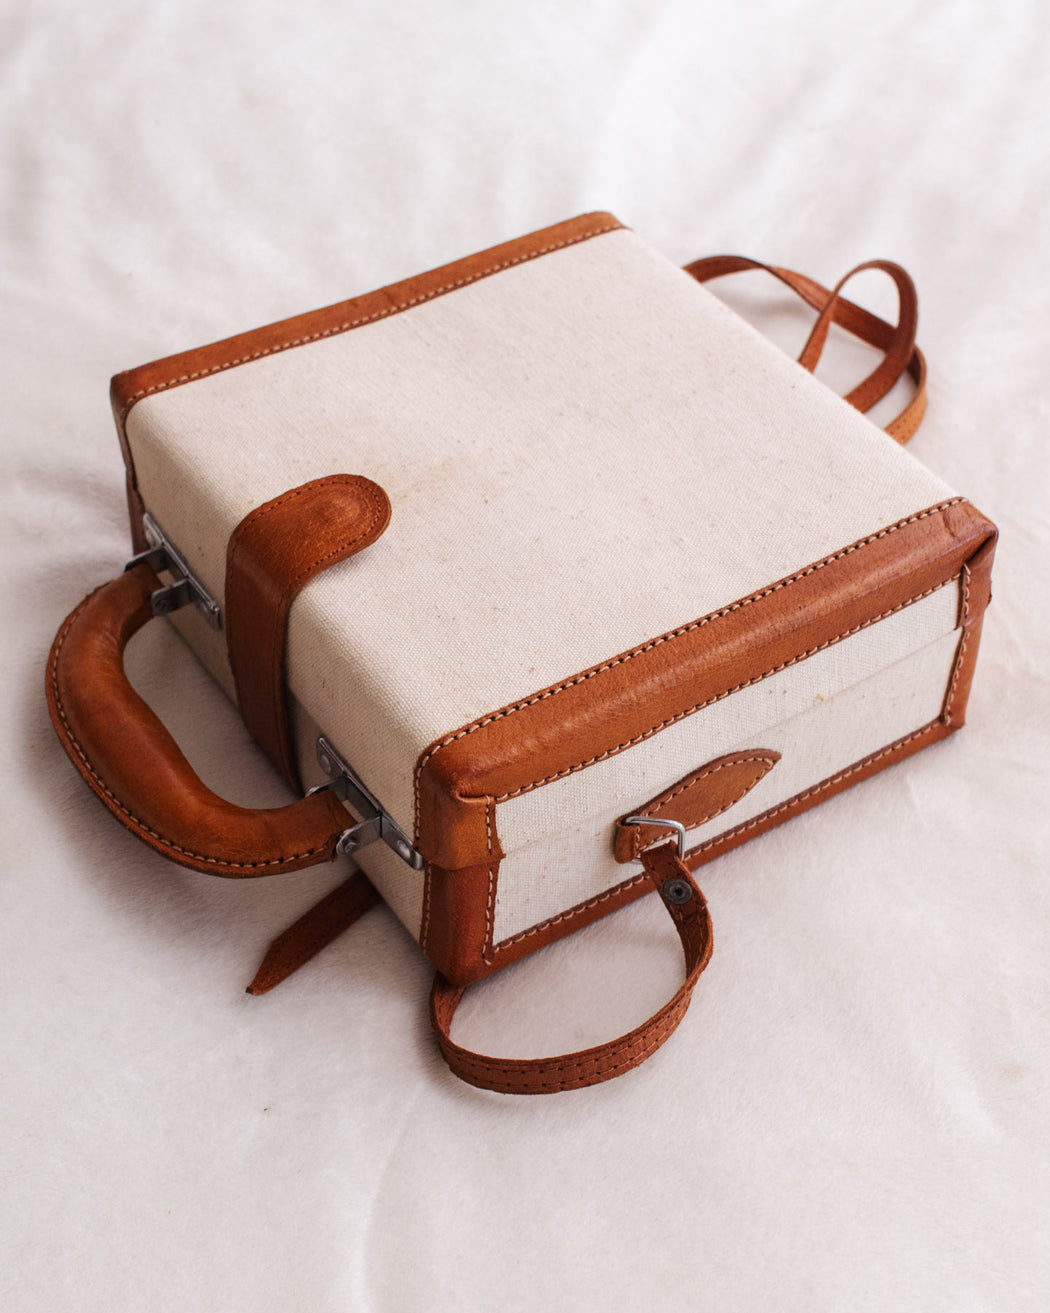 Vintage Canvas Box Handbag